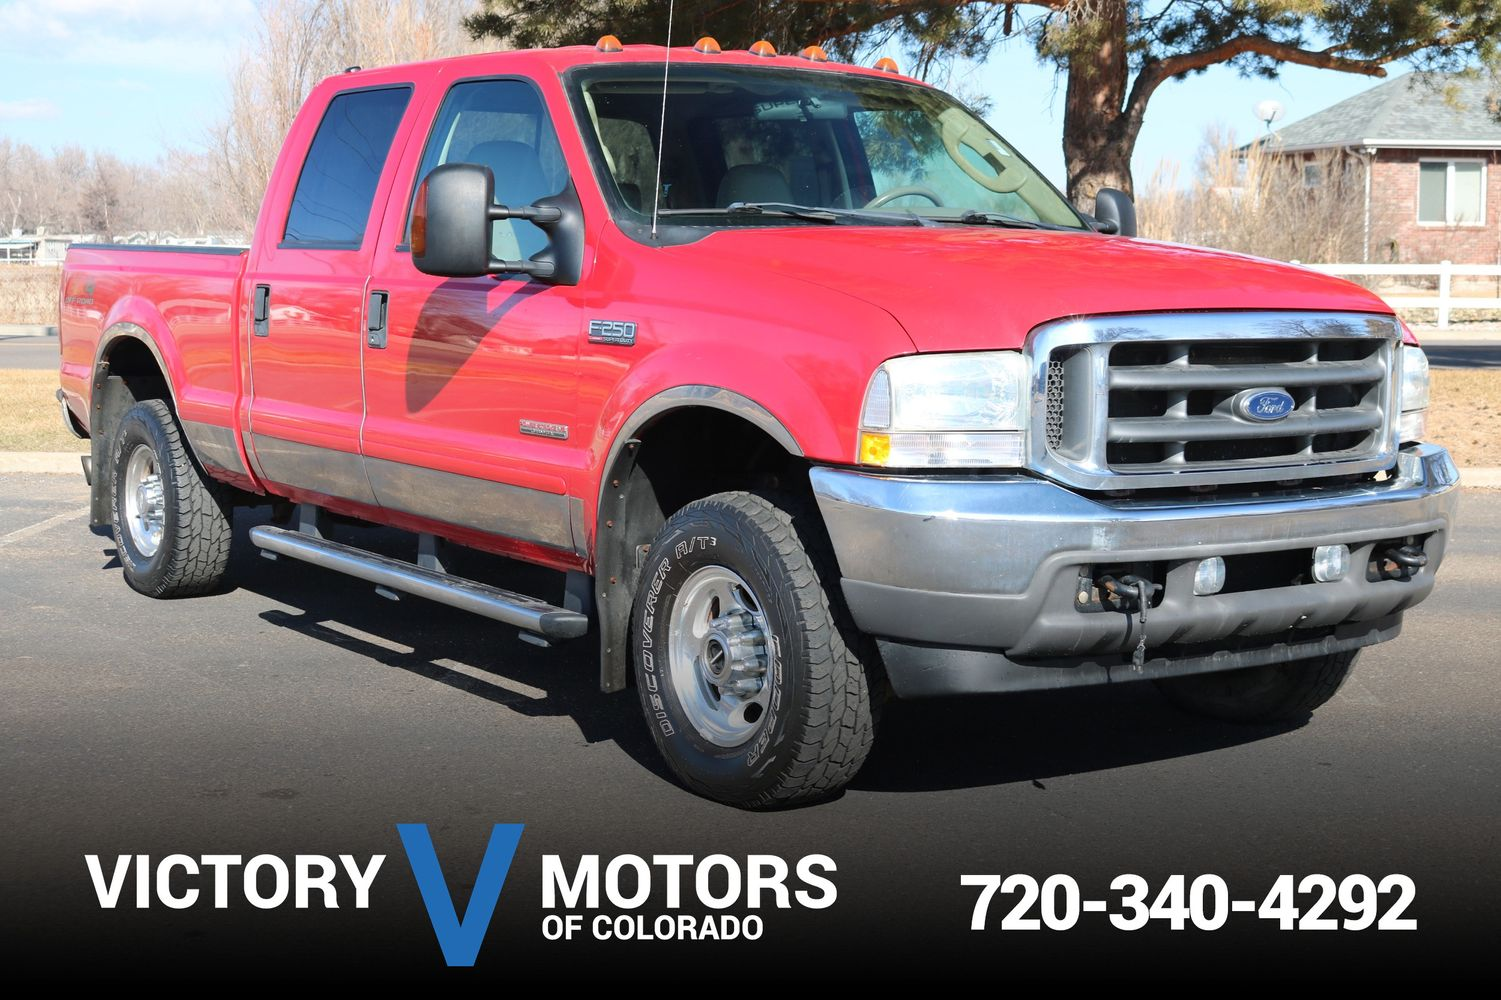 2004 Ford F 250 Lariat Victory Motors Of Colorado Super Duty